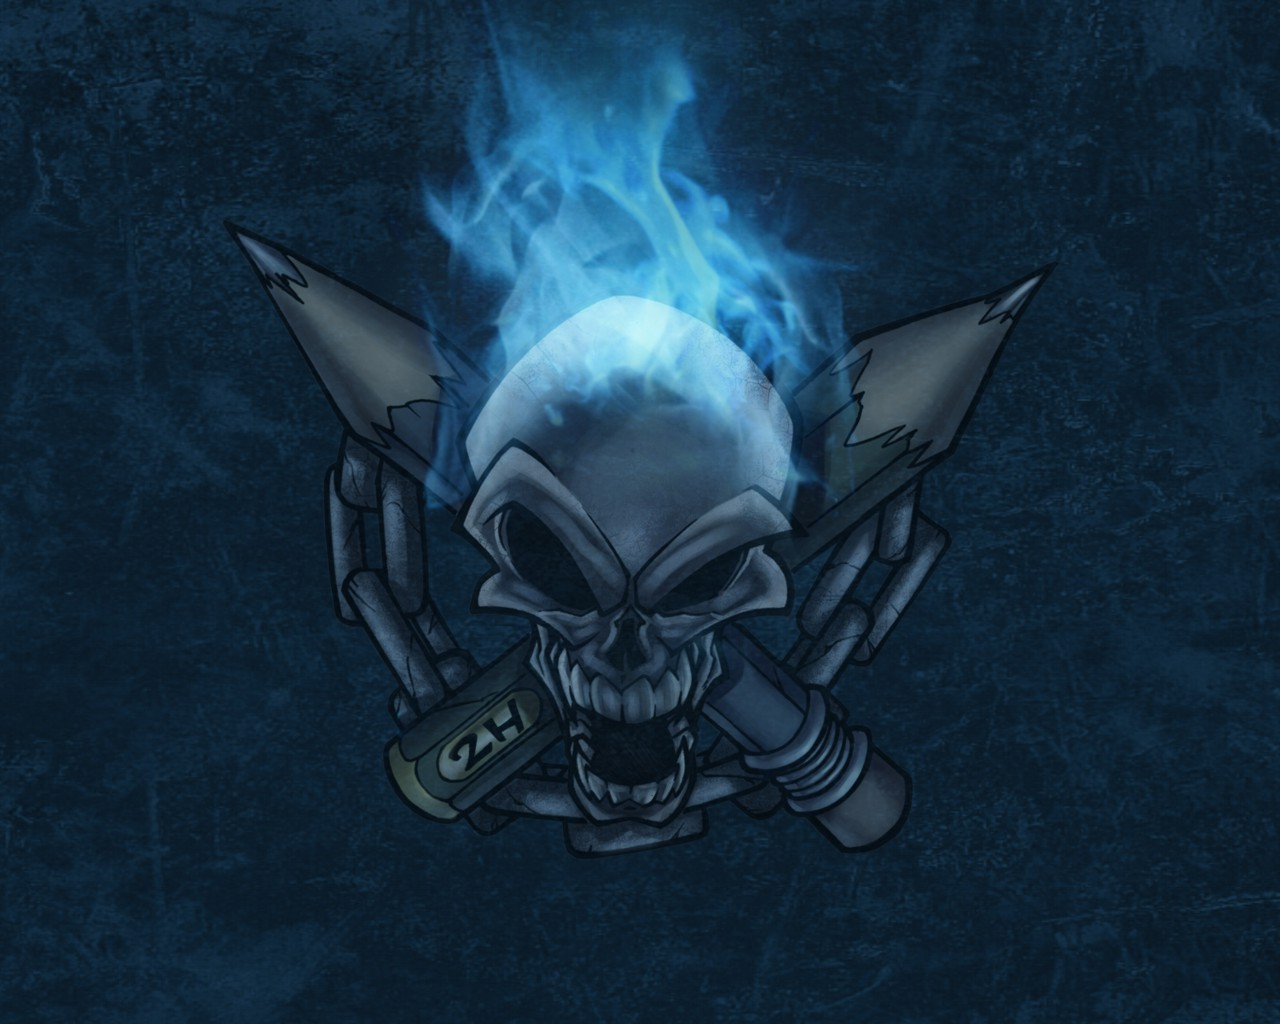 Download Artistic Skulls wallpaper blue flames skull 1280x1024